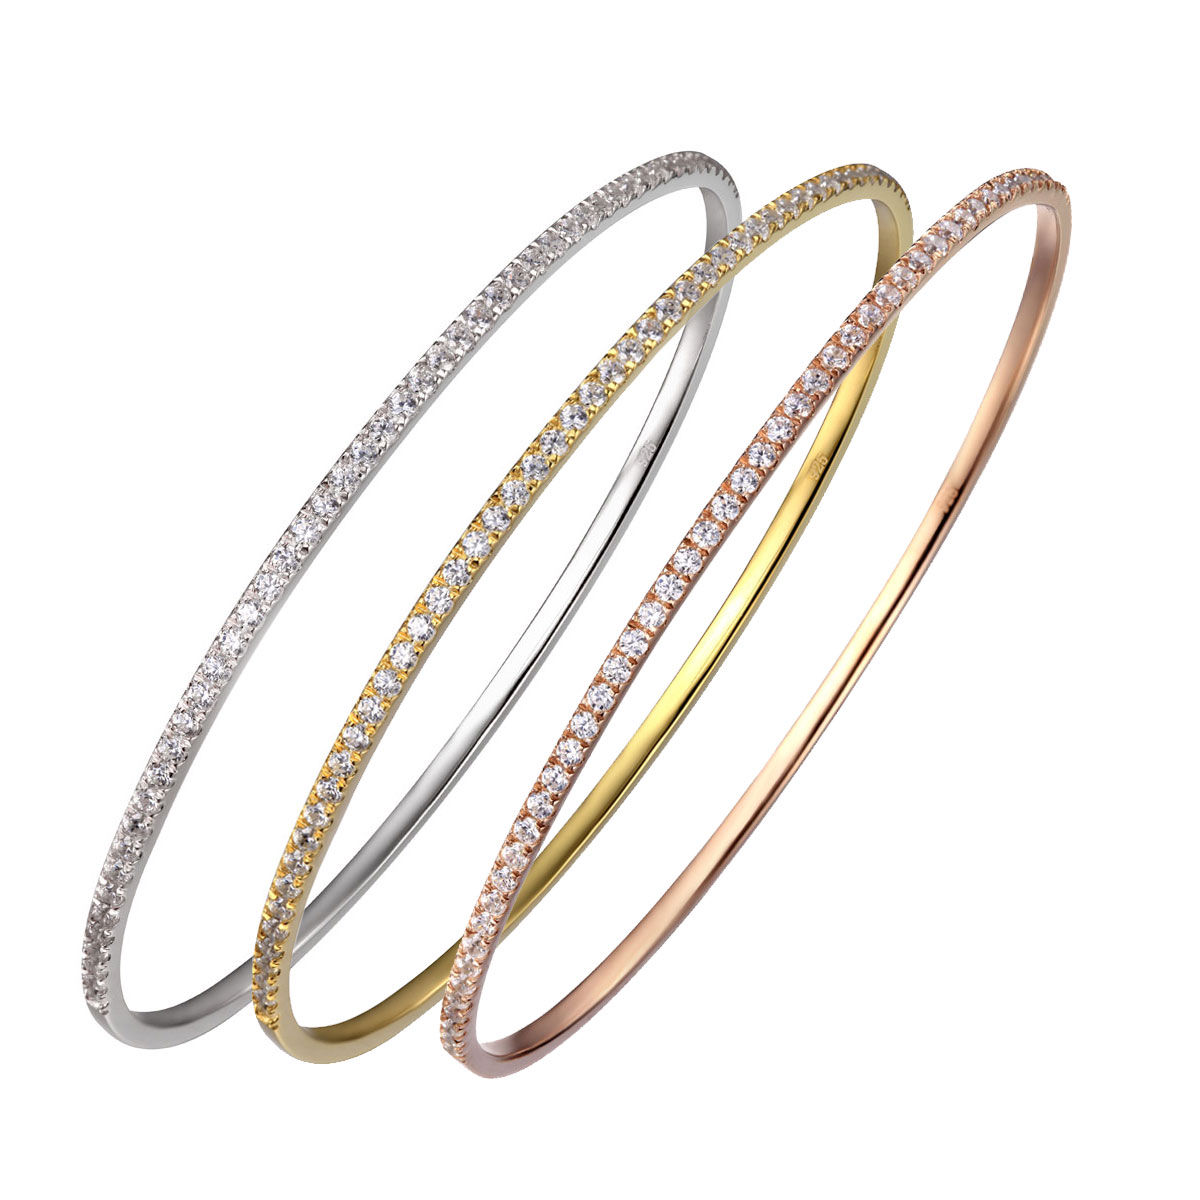 Cashs Ireland, Bond Bangle Bracelet Set, Silver, Gold and Rose Gold